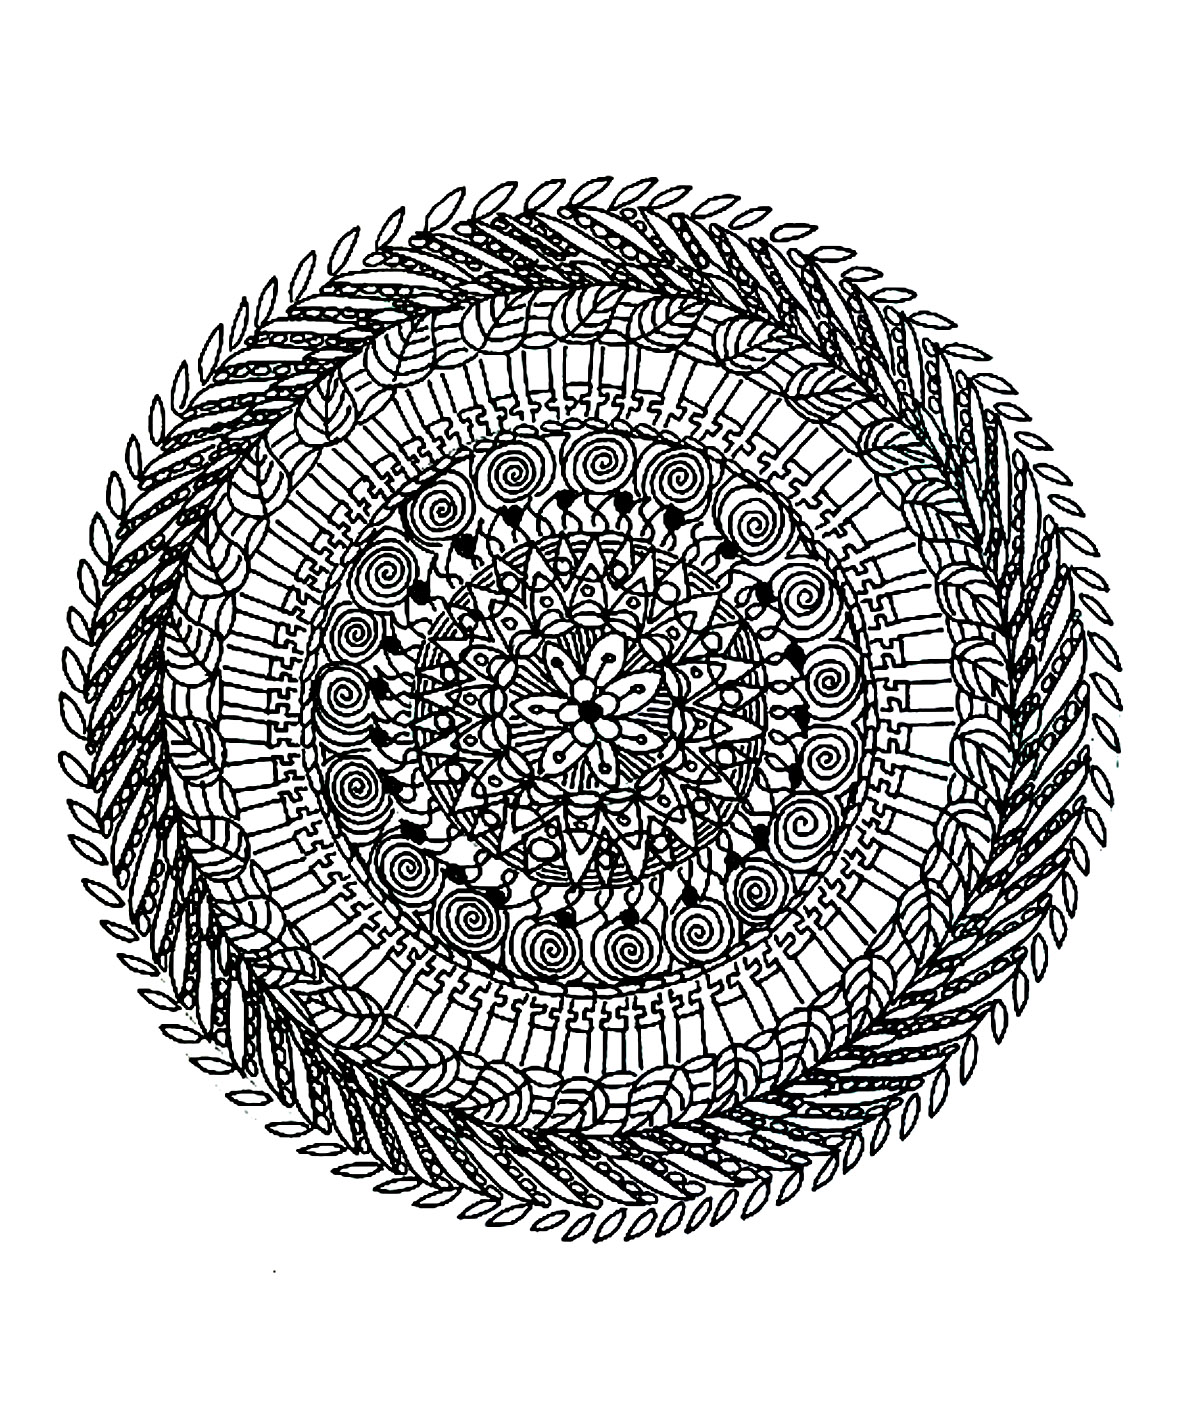 Hard mandala coloring pages for adults - Mandalas Coloring Pages For Adults Coloring Free Mandala Difficult